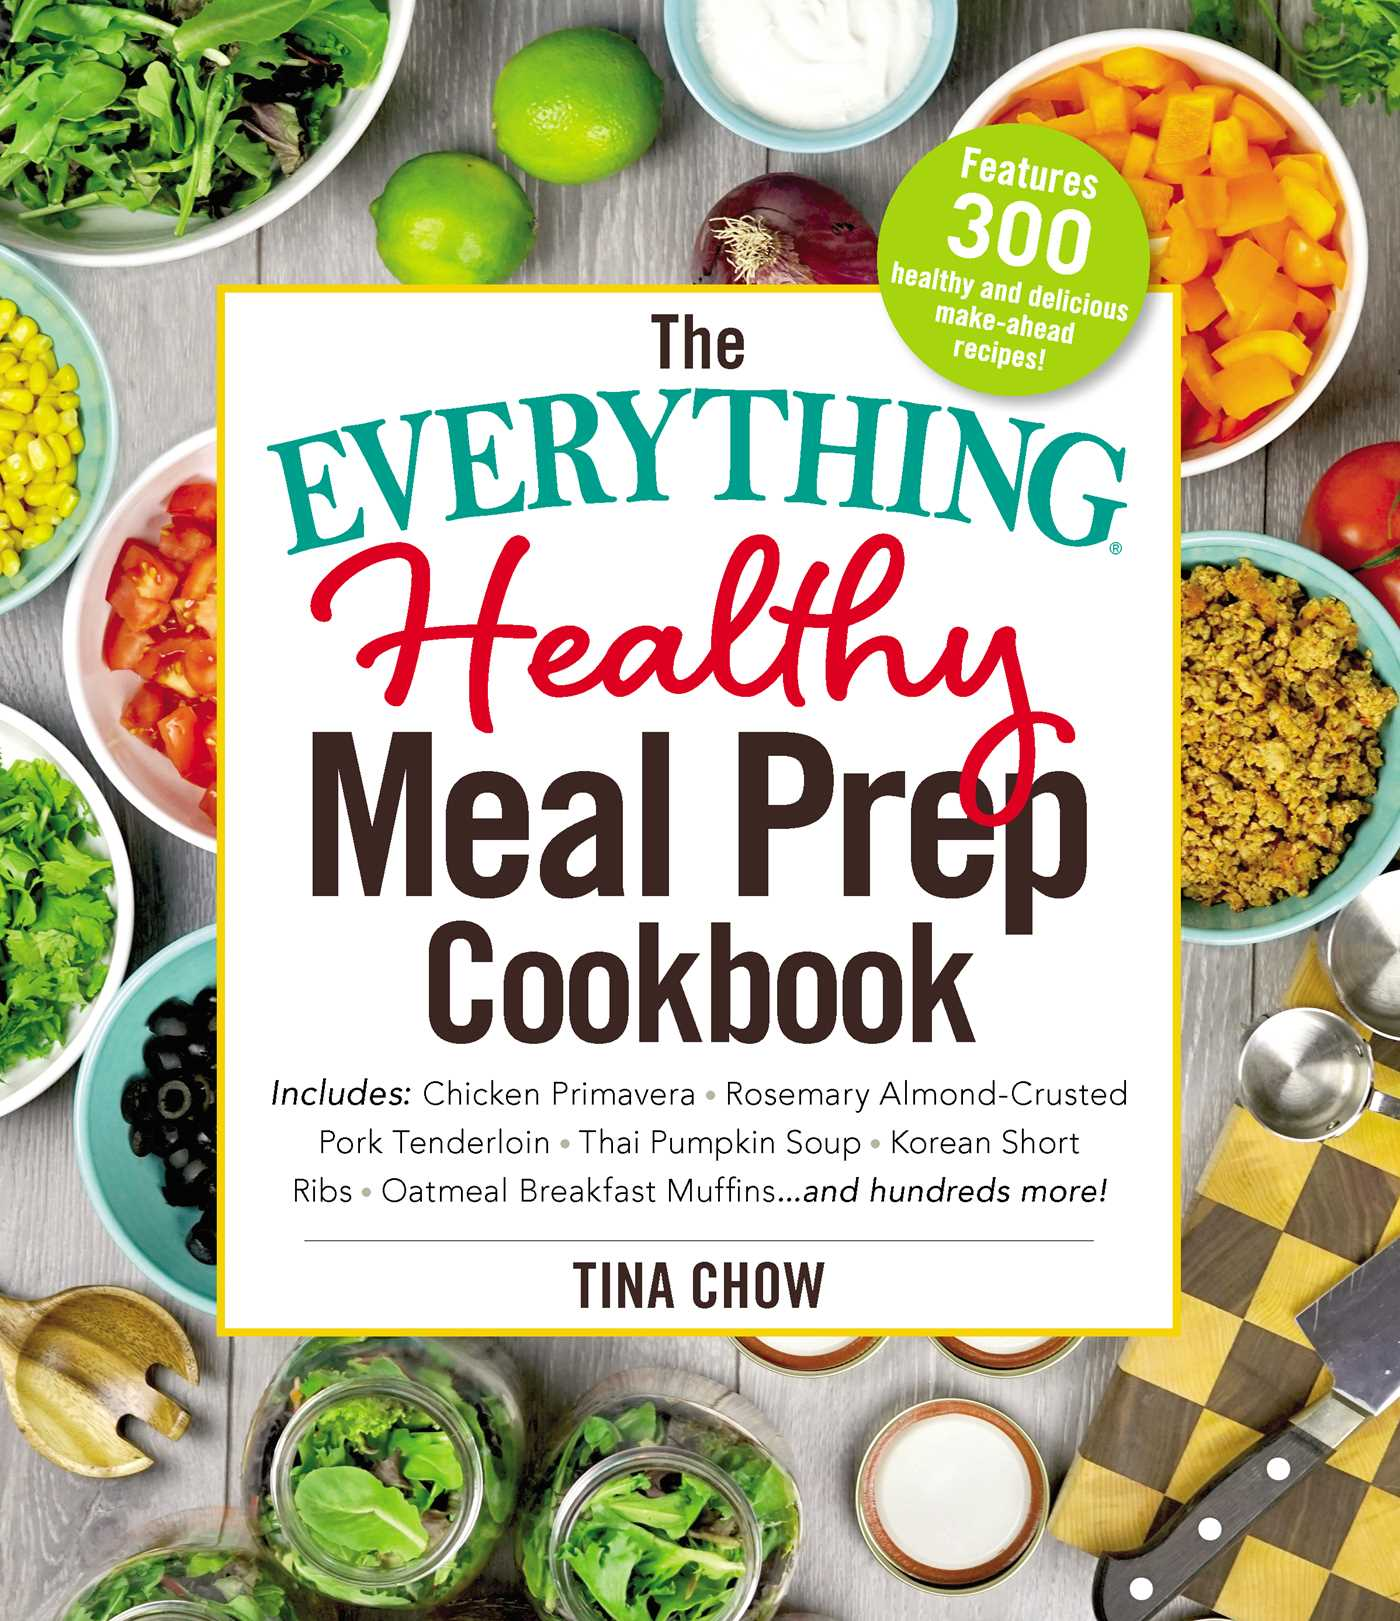 The everything healthy meal prep cookbook 9781507205983 hr